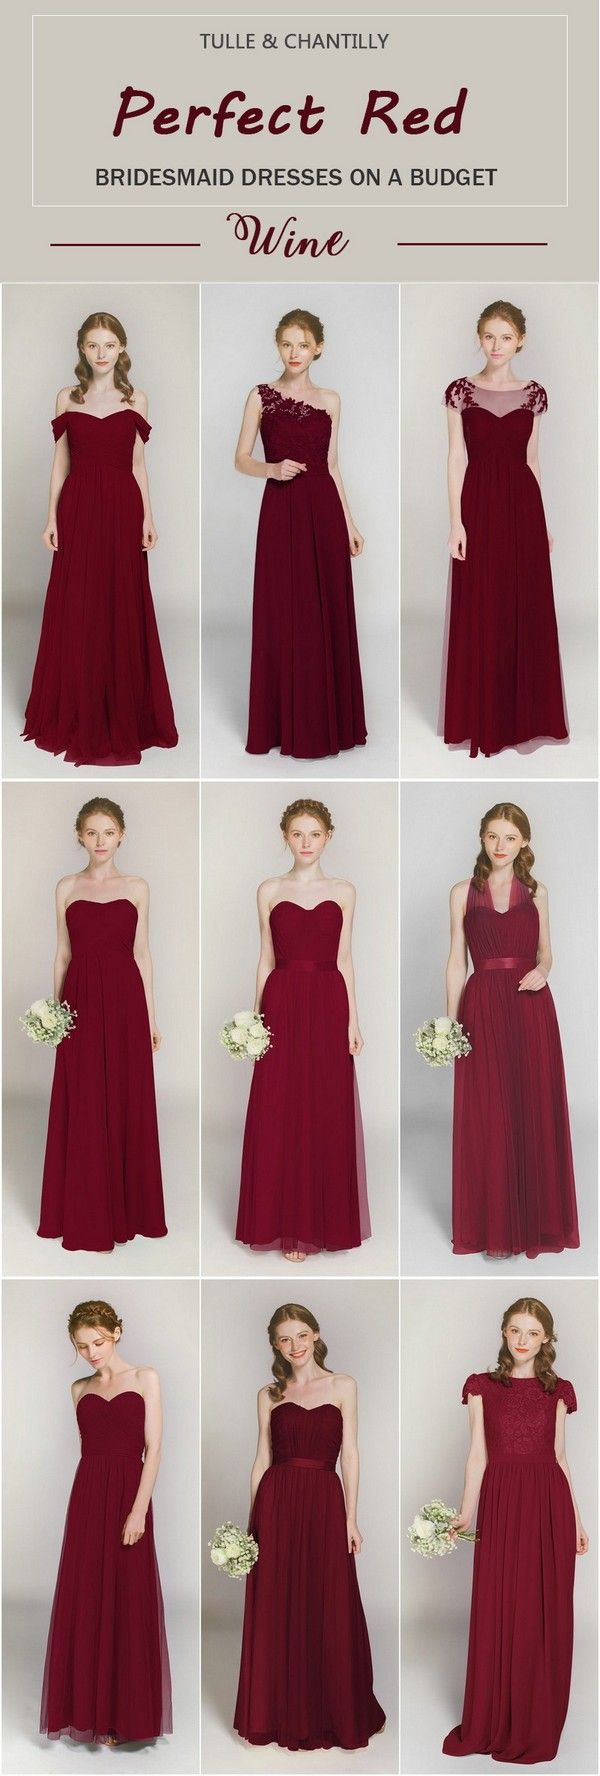 Red Bridesmaid Dresses Burgundy Bridesmaid Dresses Tulle Chantilly Bridesmaid Dress Colors Bridesmaid Dresses Red Long Red Bridesmaid Dresses Wine Bridesmaid Dresses